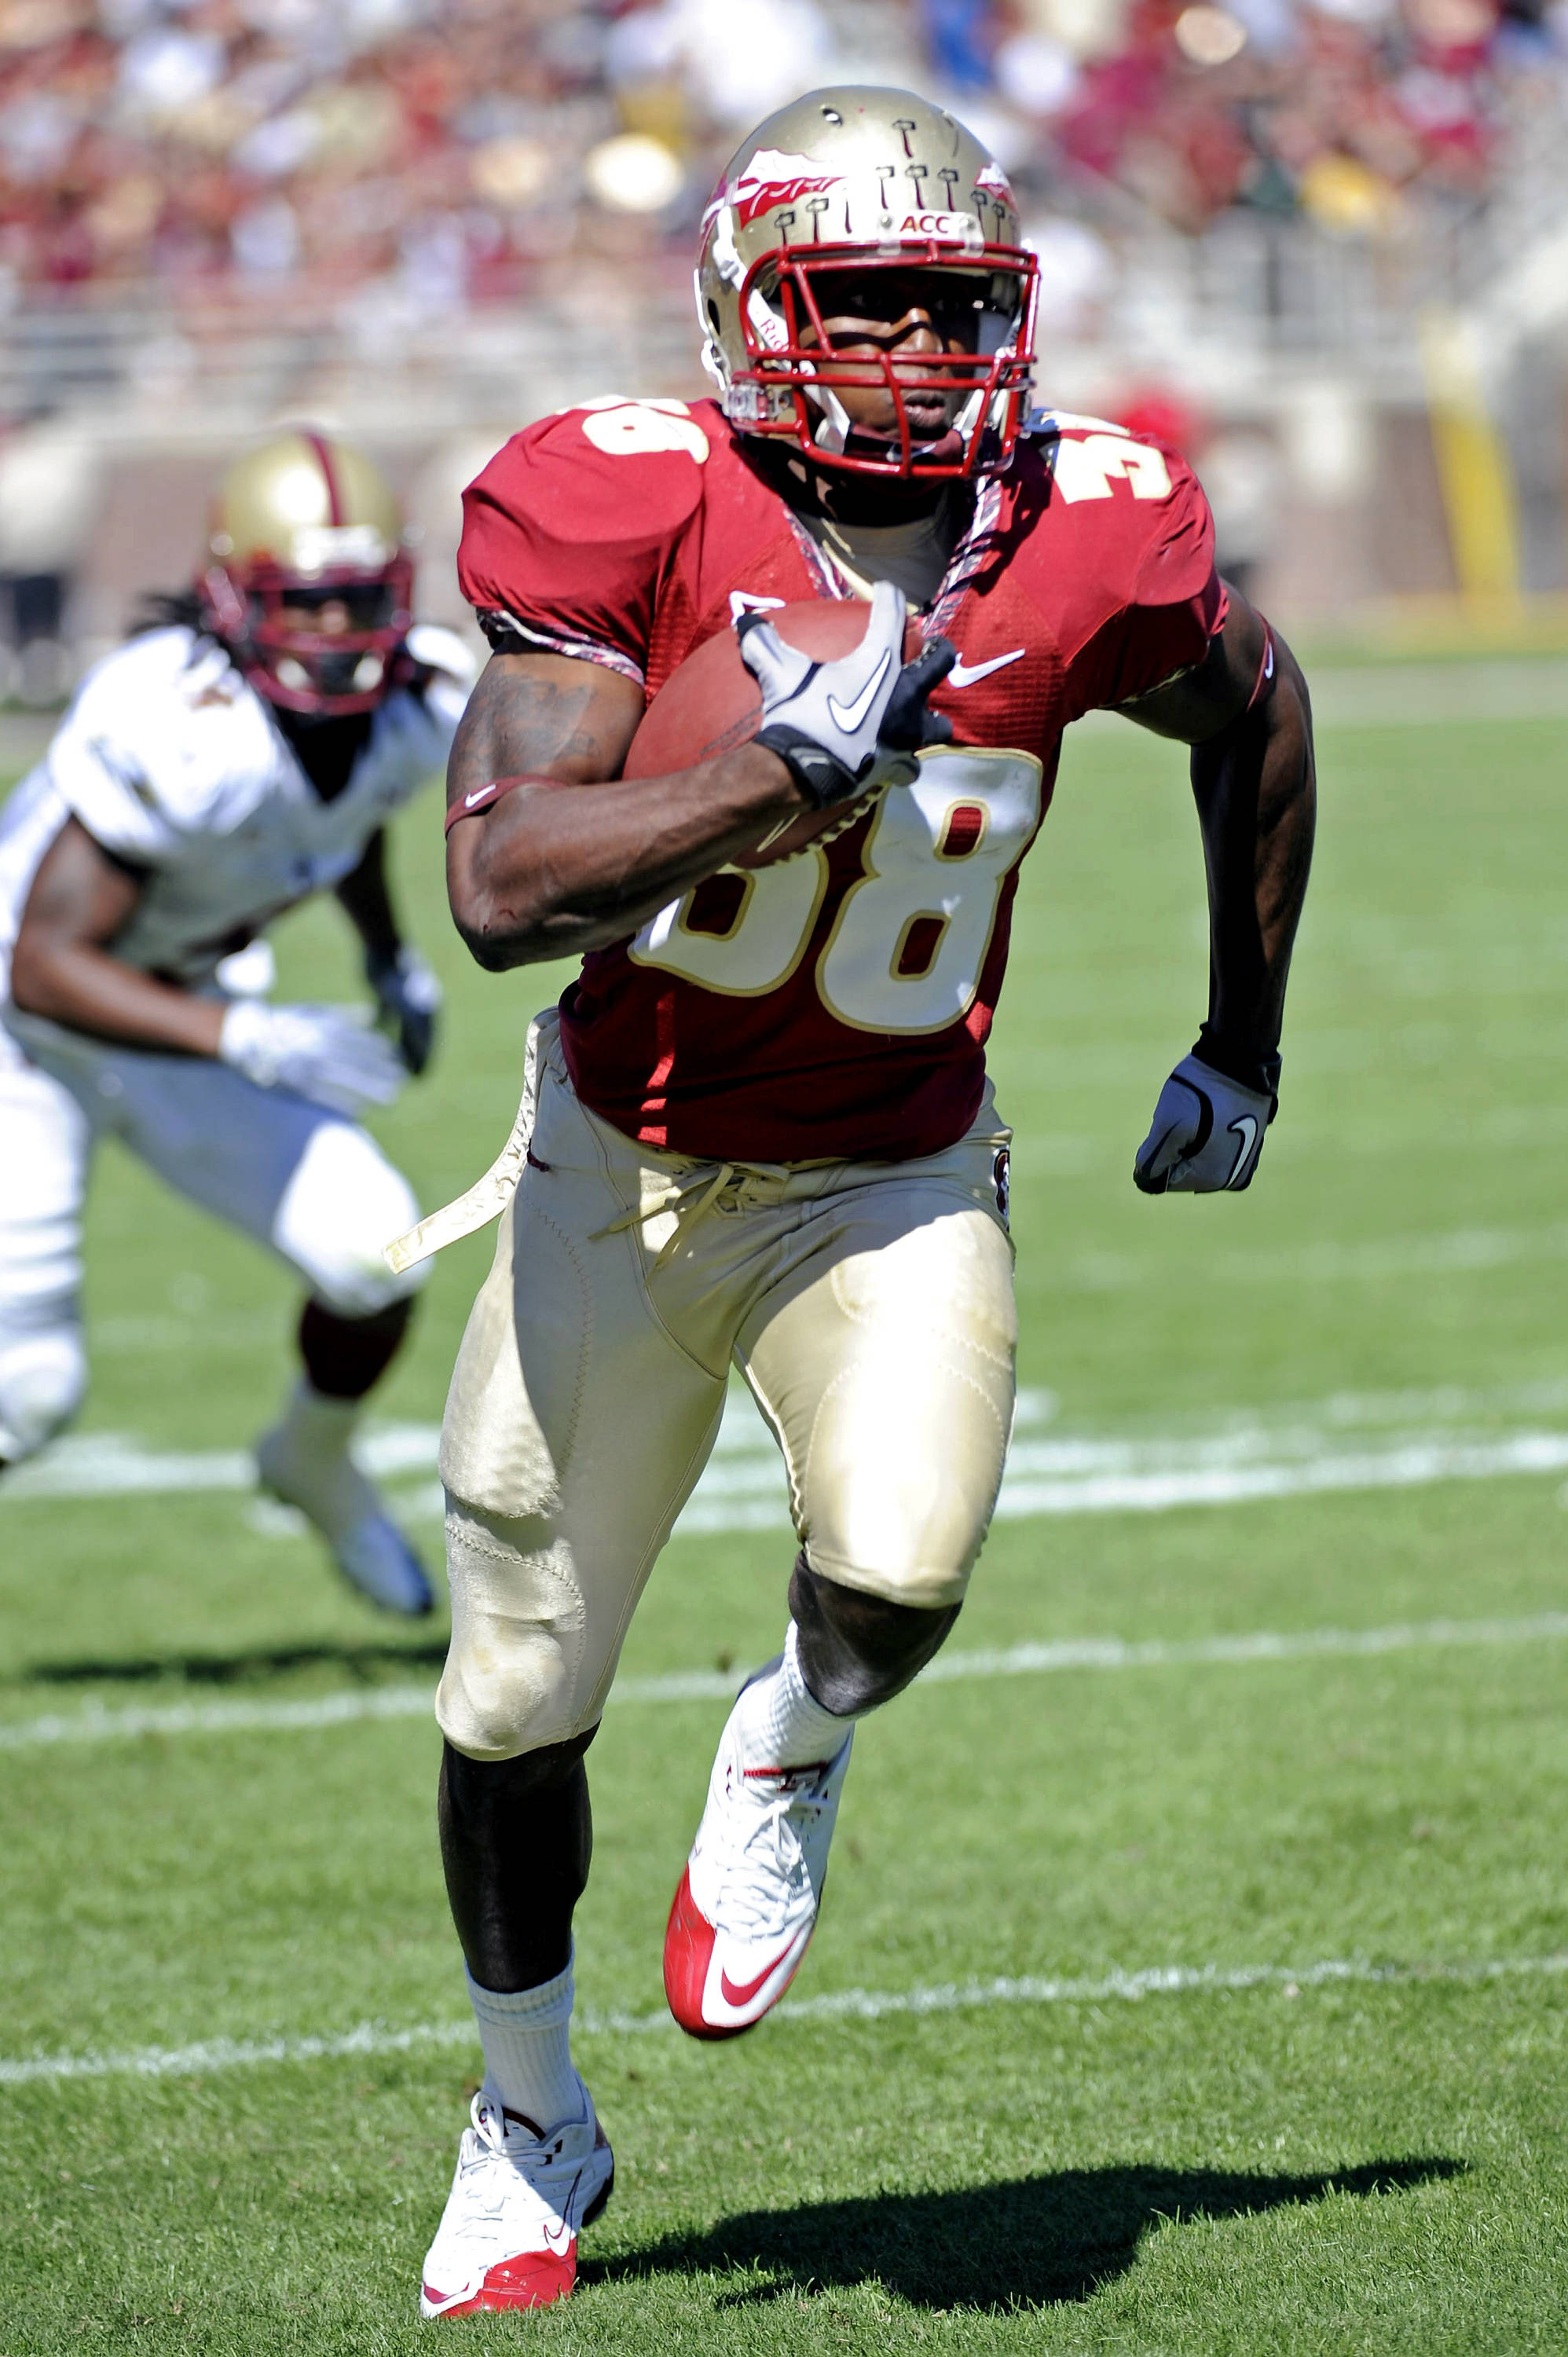 Jermaine Thomas (38)